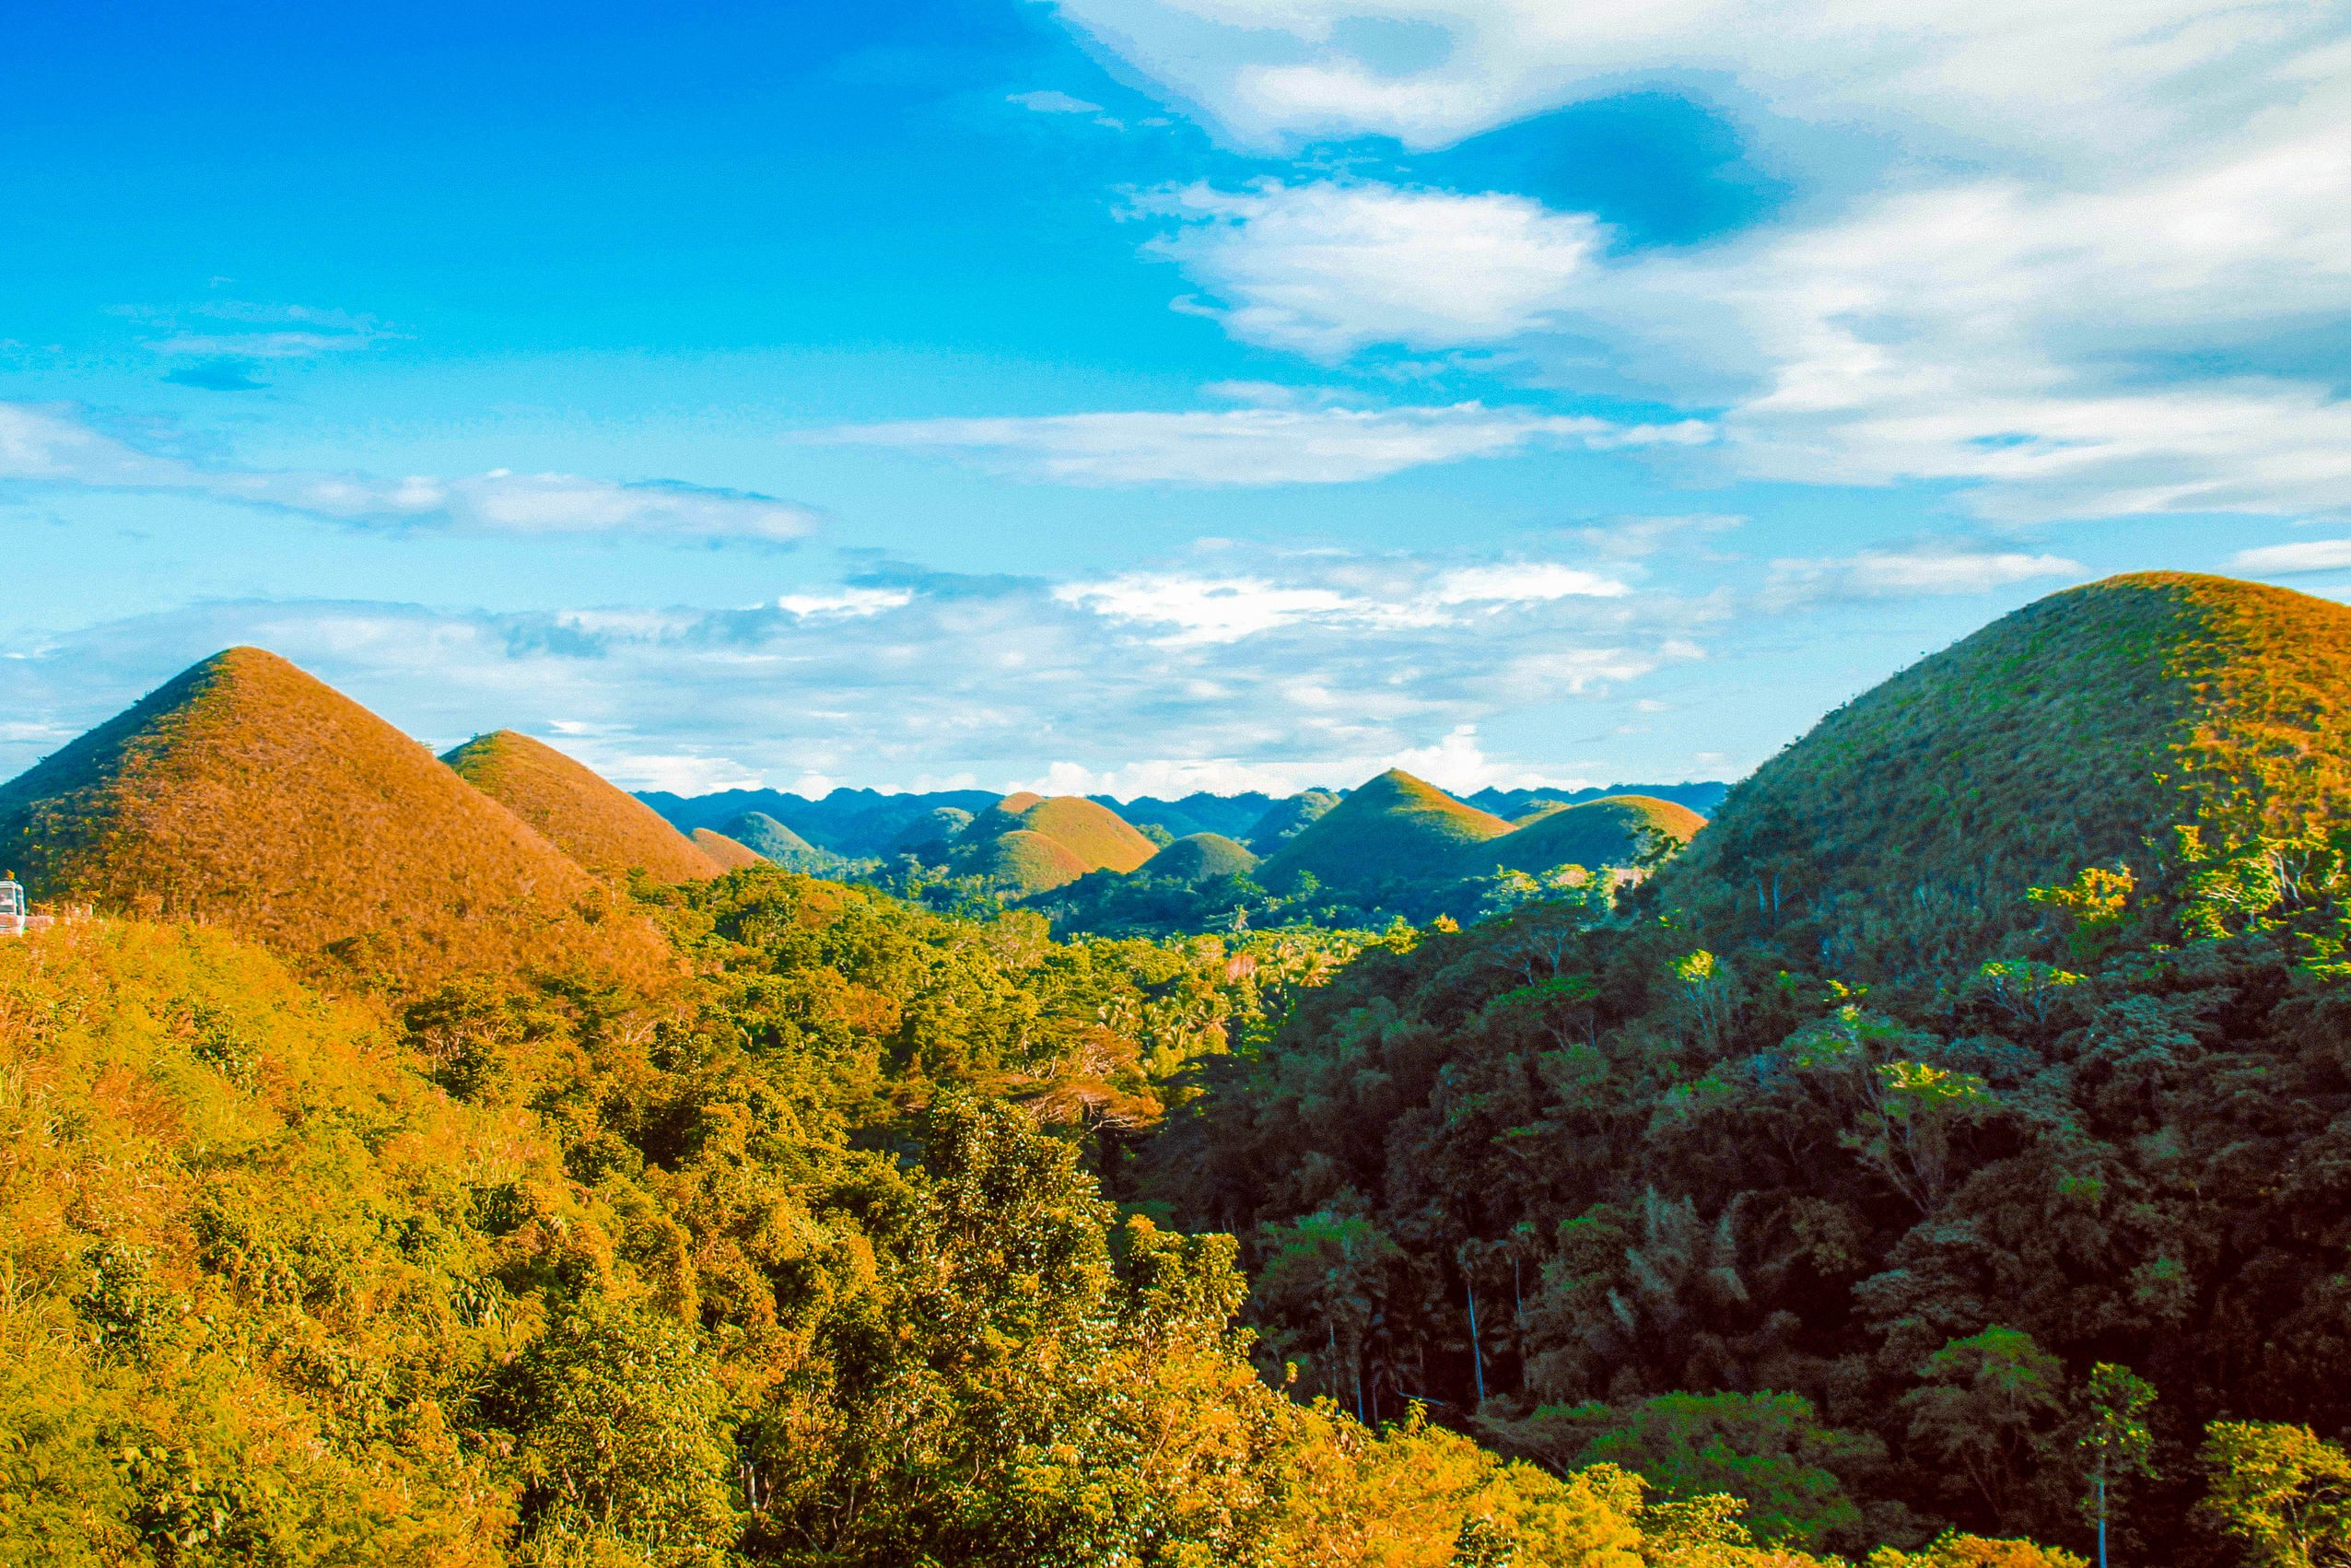 Numerous brown hills rising above green forests in Bohol, Philippines